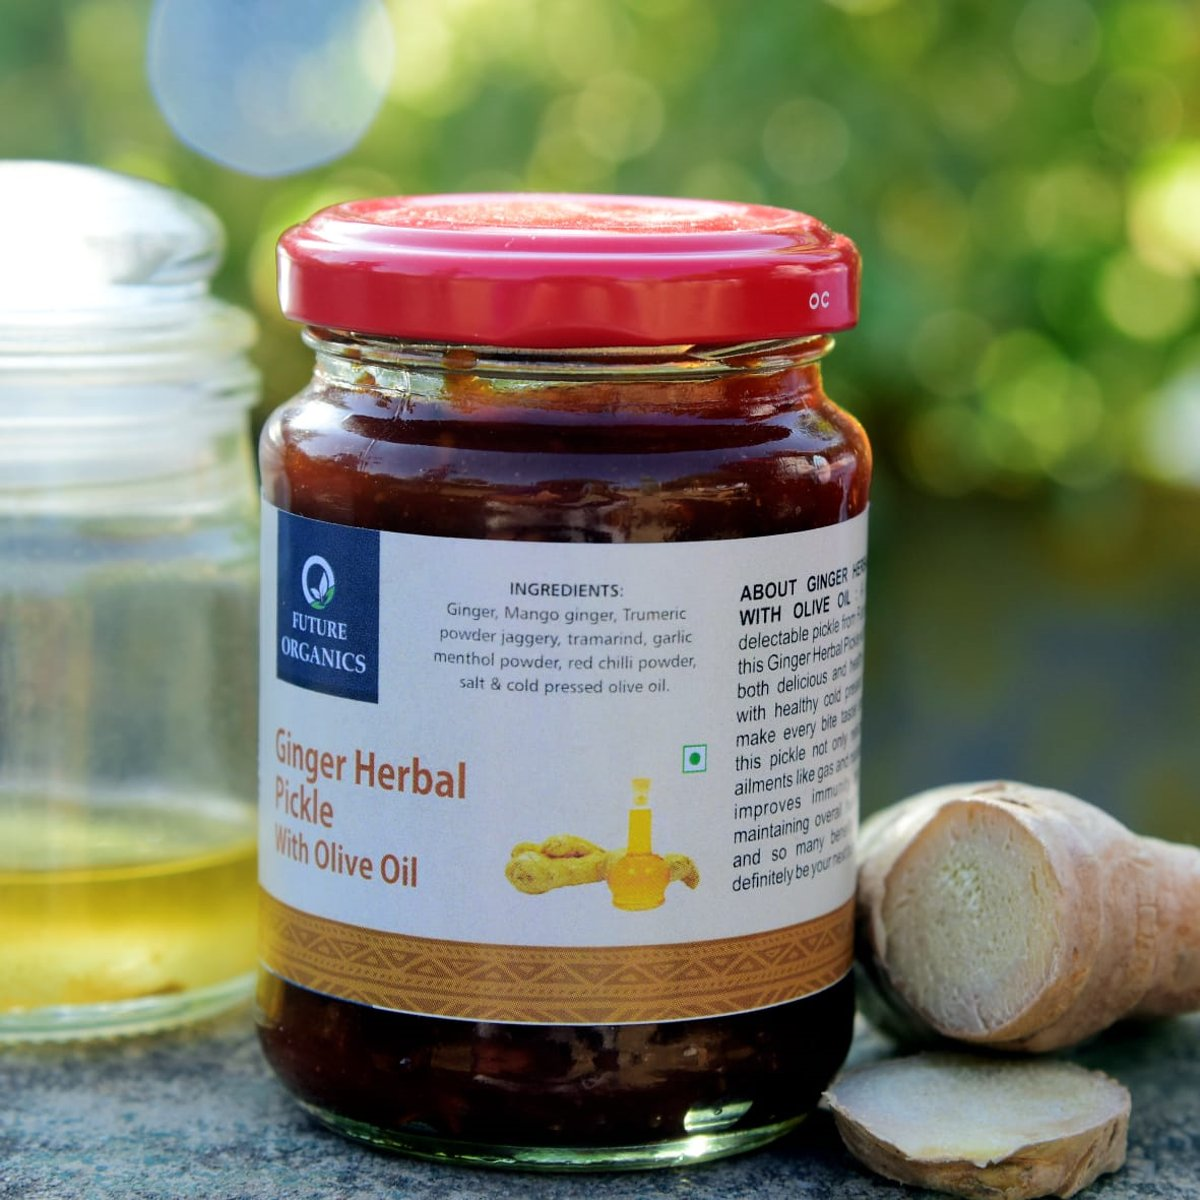 Ginger Herbal Pickle With Olive Oil(set of 2)